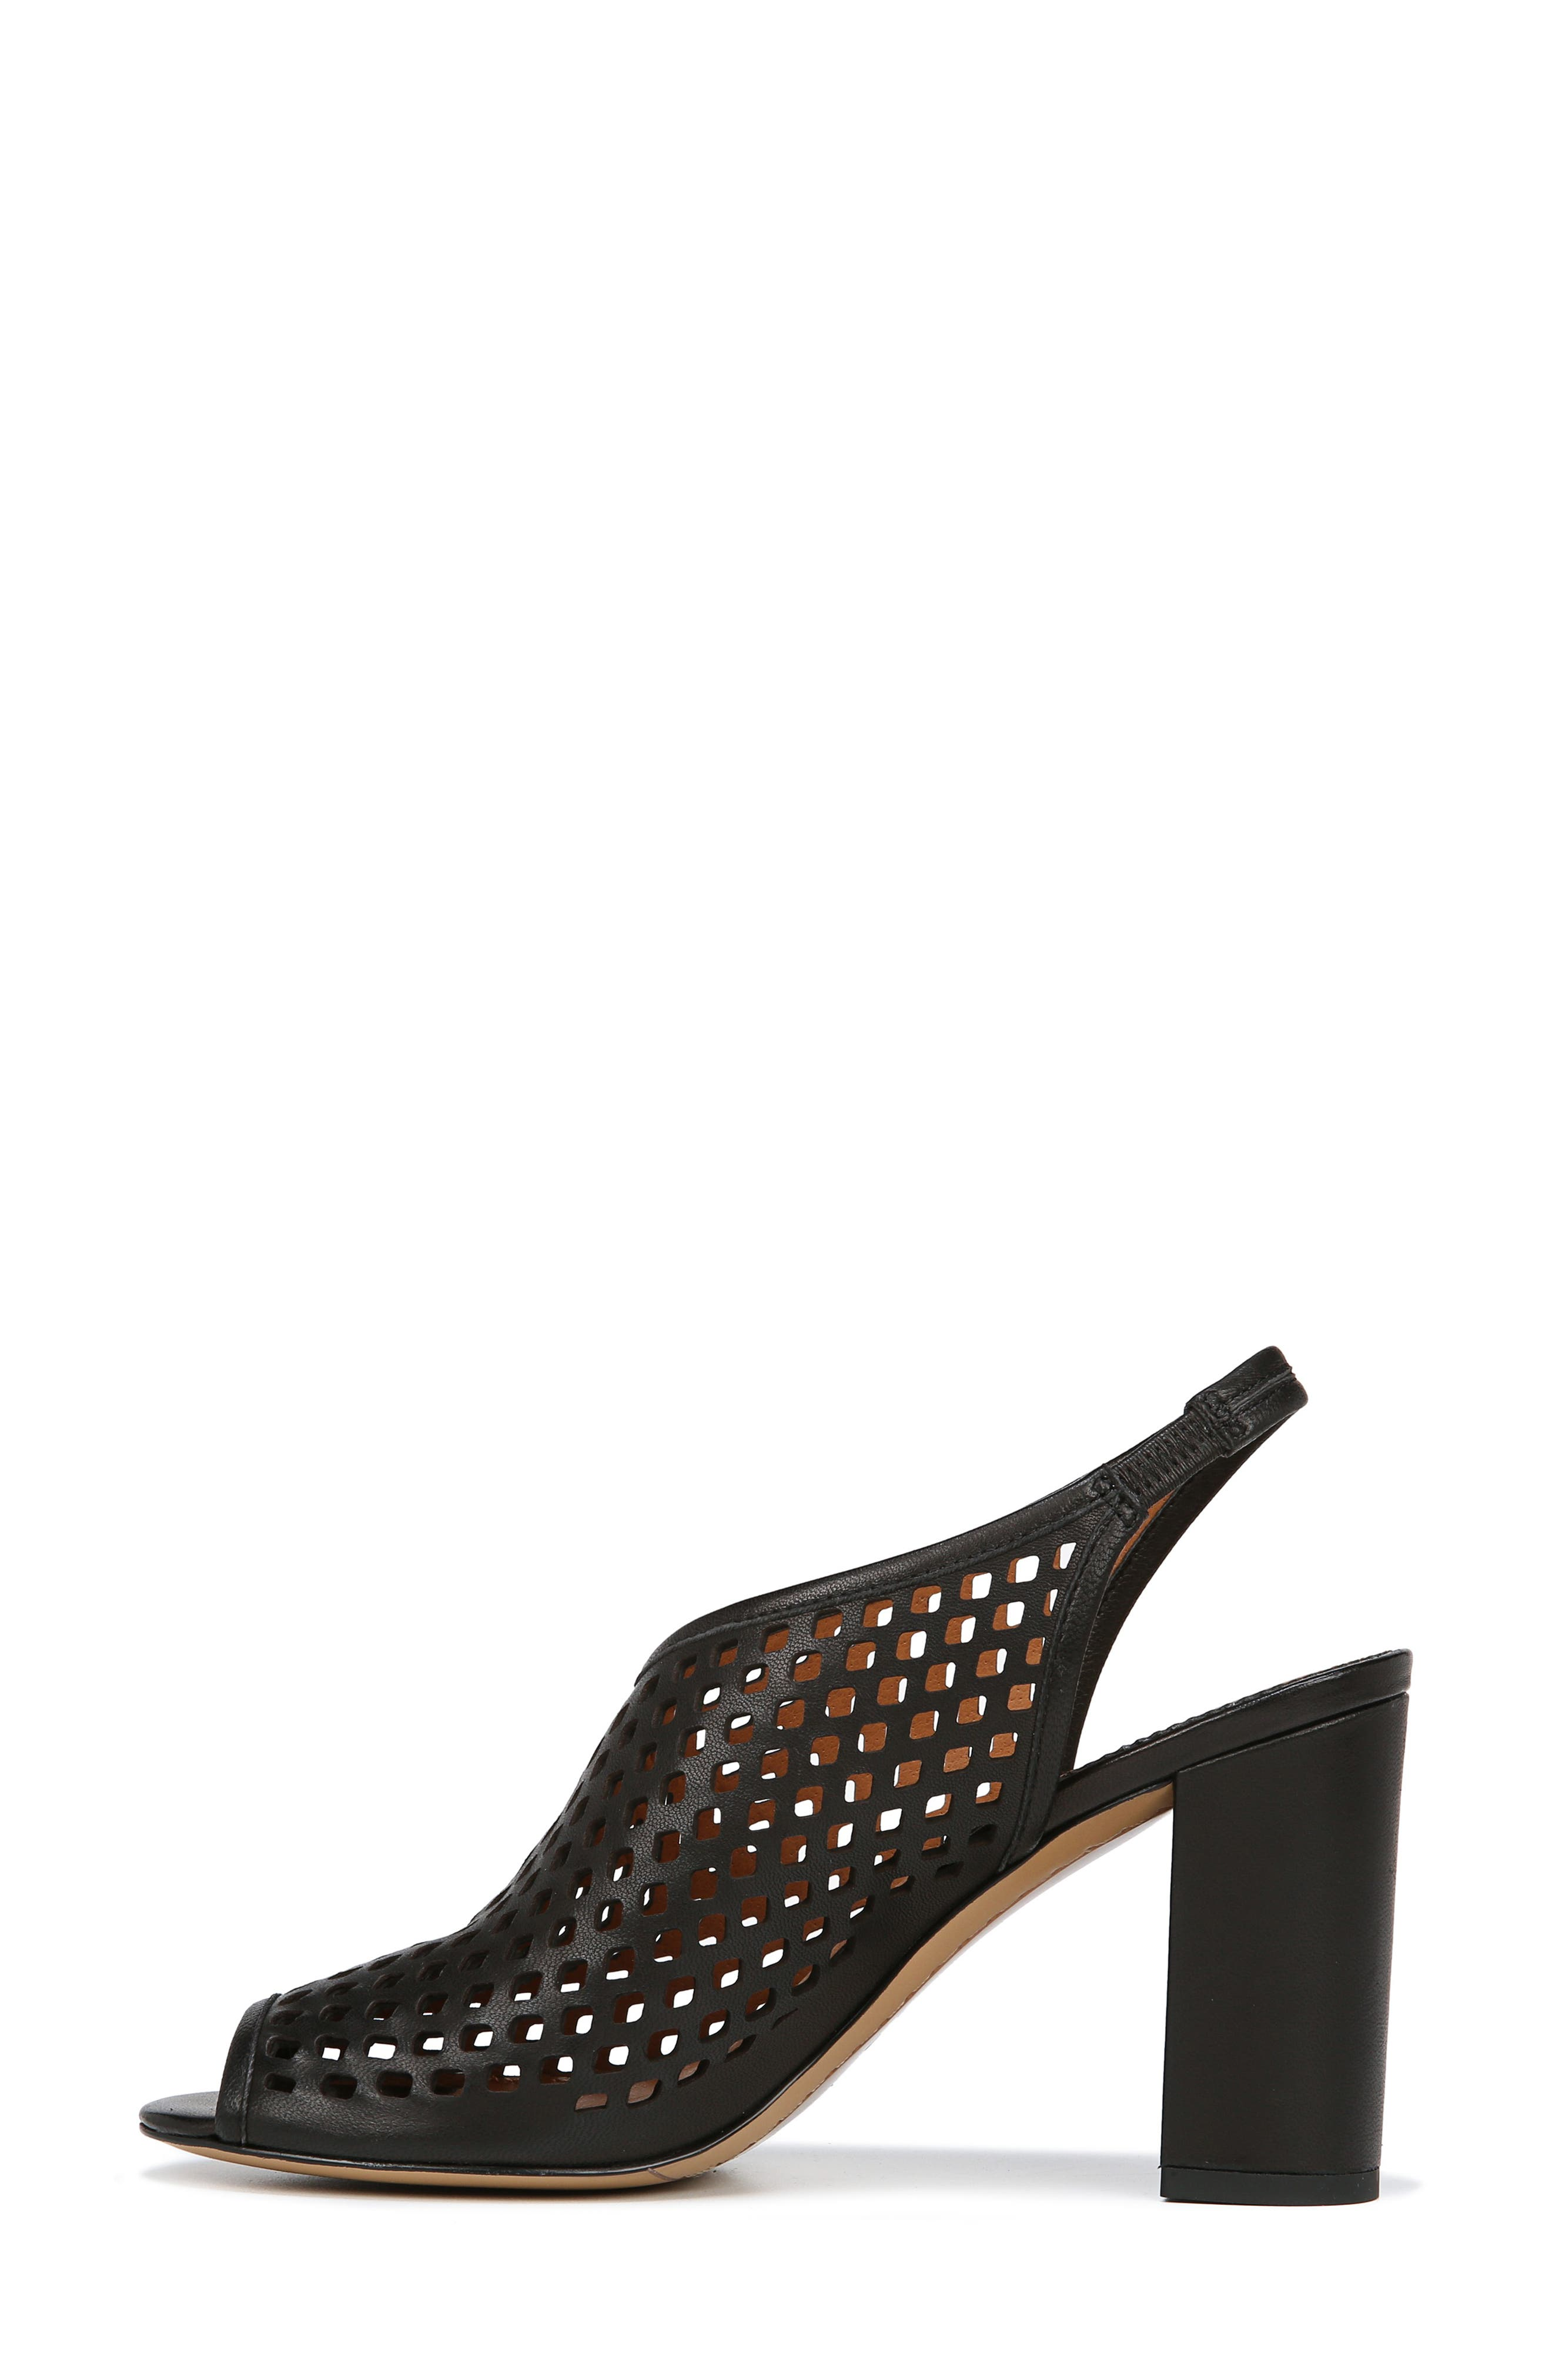 Osbourne Perforated Slingback Sandal,                             Alternate thumbnail 9, color,                             BLACK LEATHER